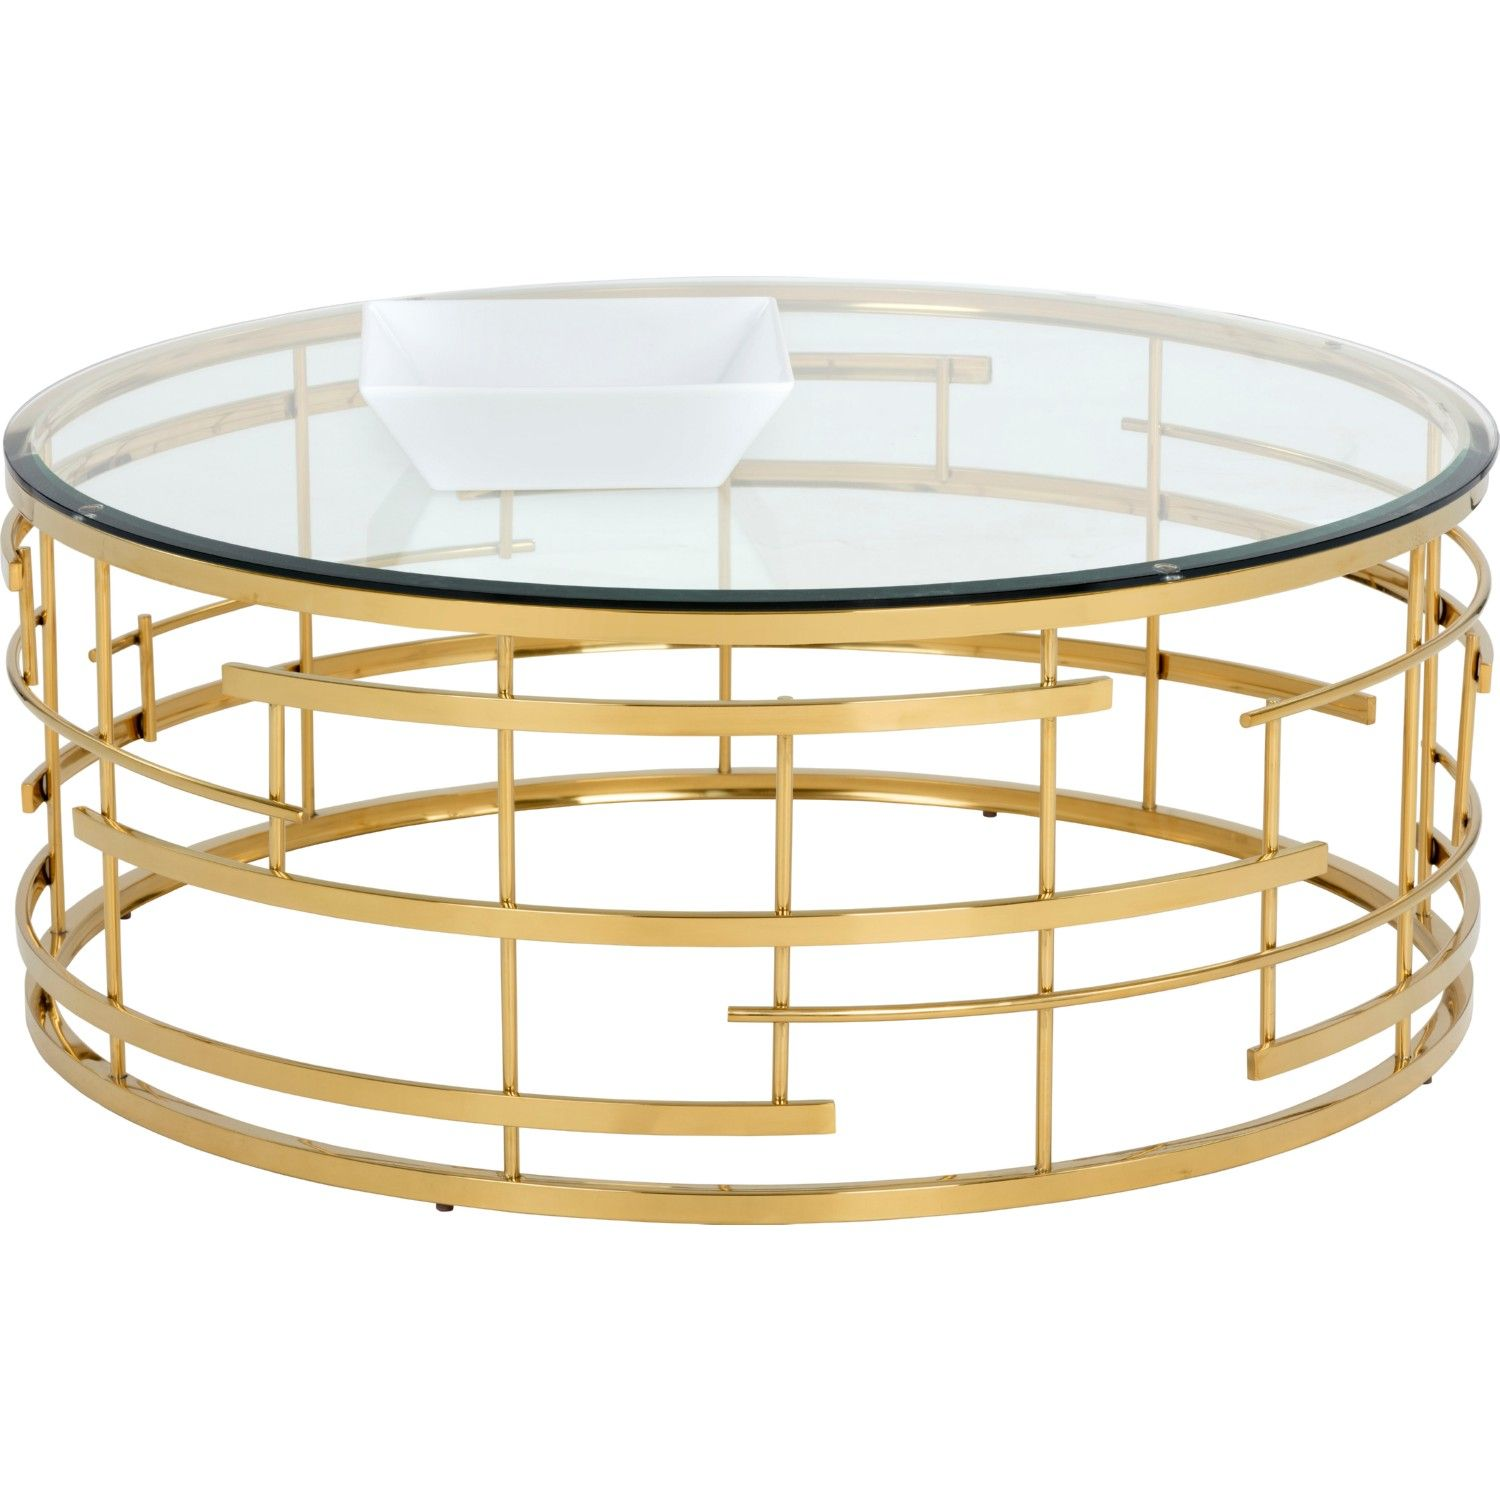 Sunpan Cielo Coffee Table w Round Glass Top on Gold Metal Base